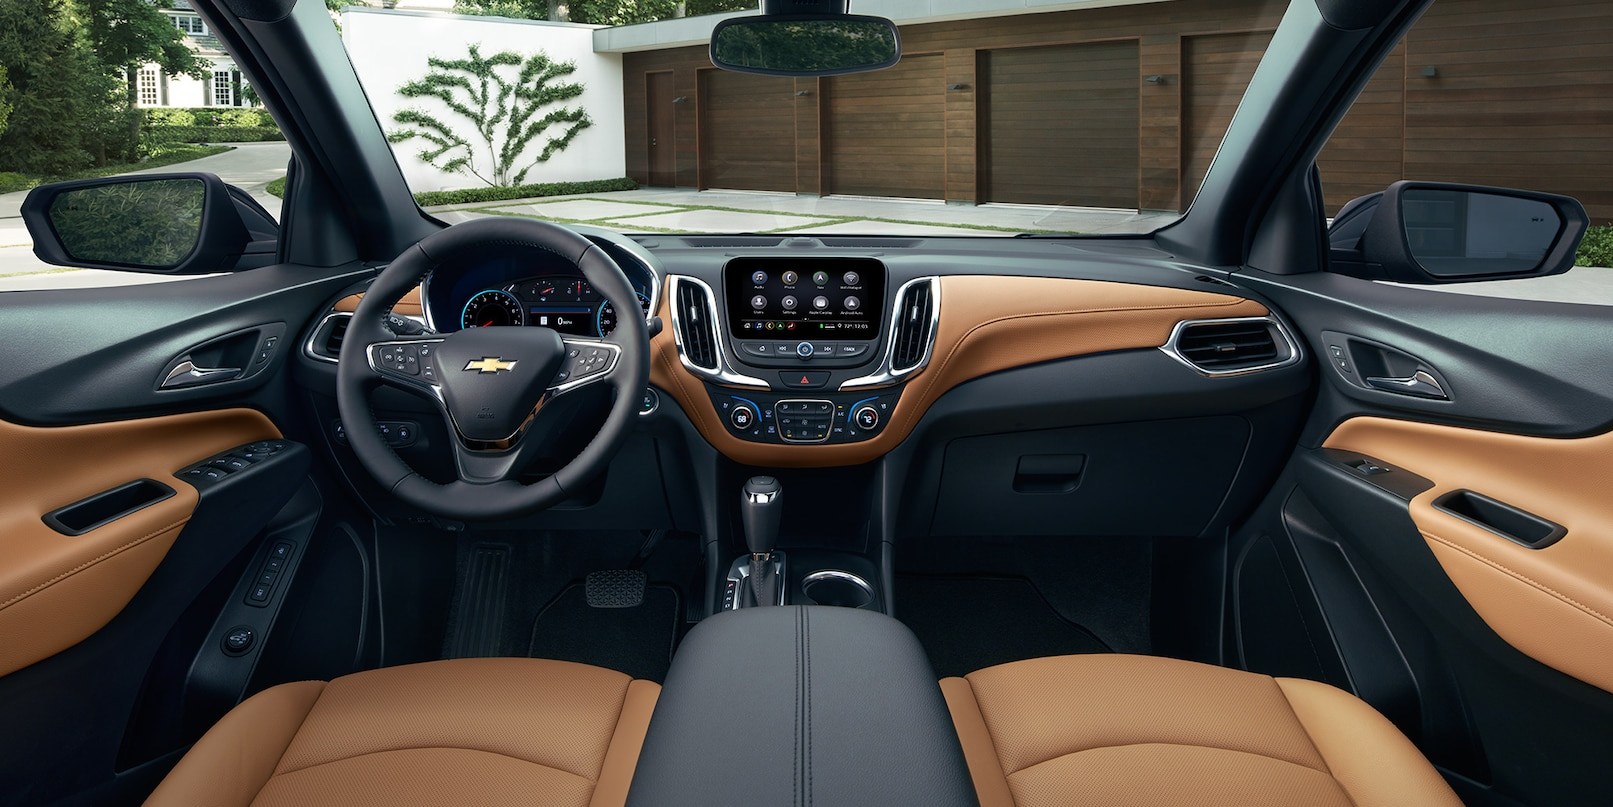 Interior of the 2020 Equinox